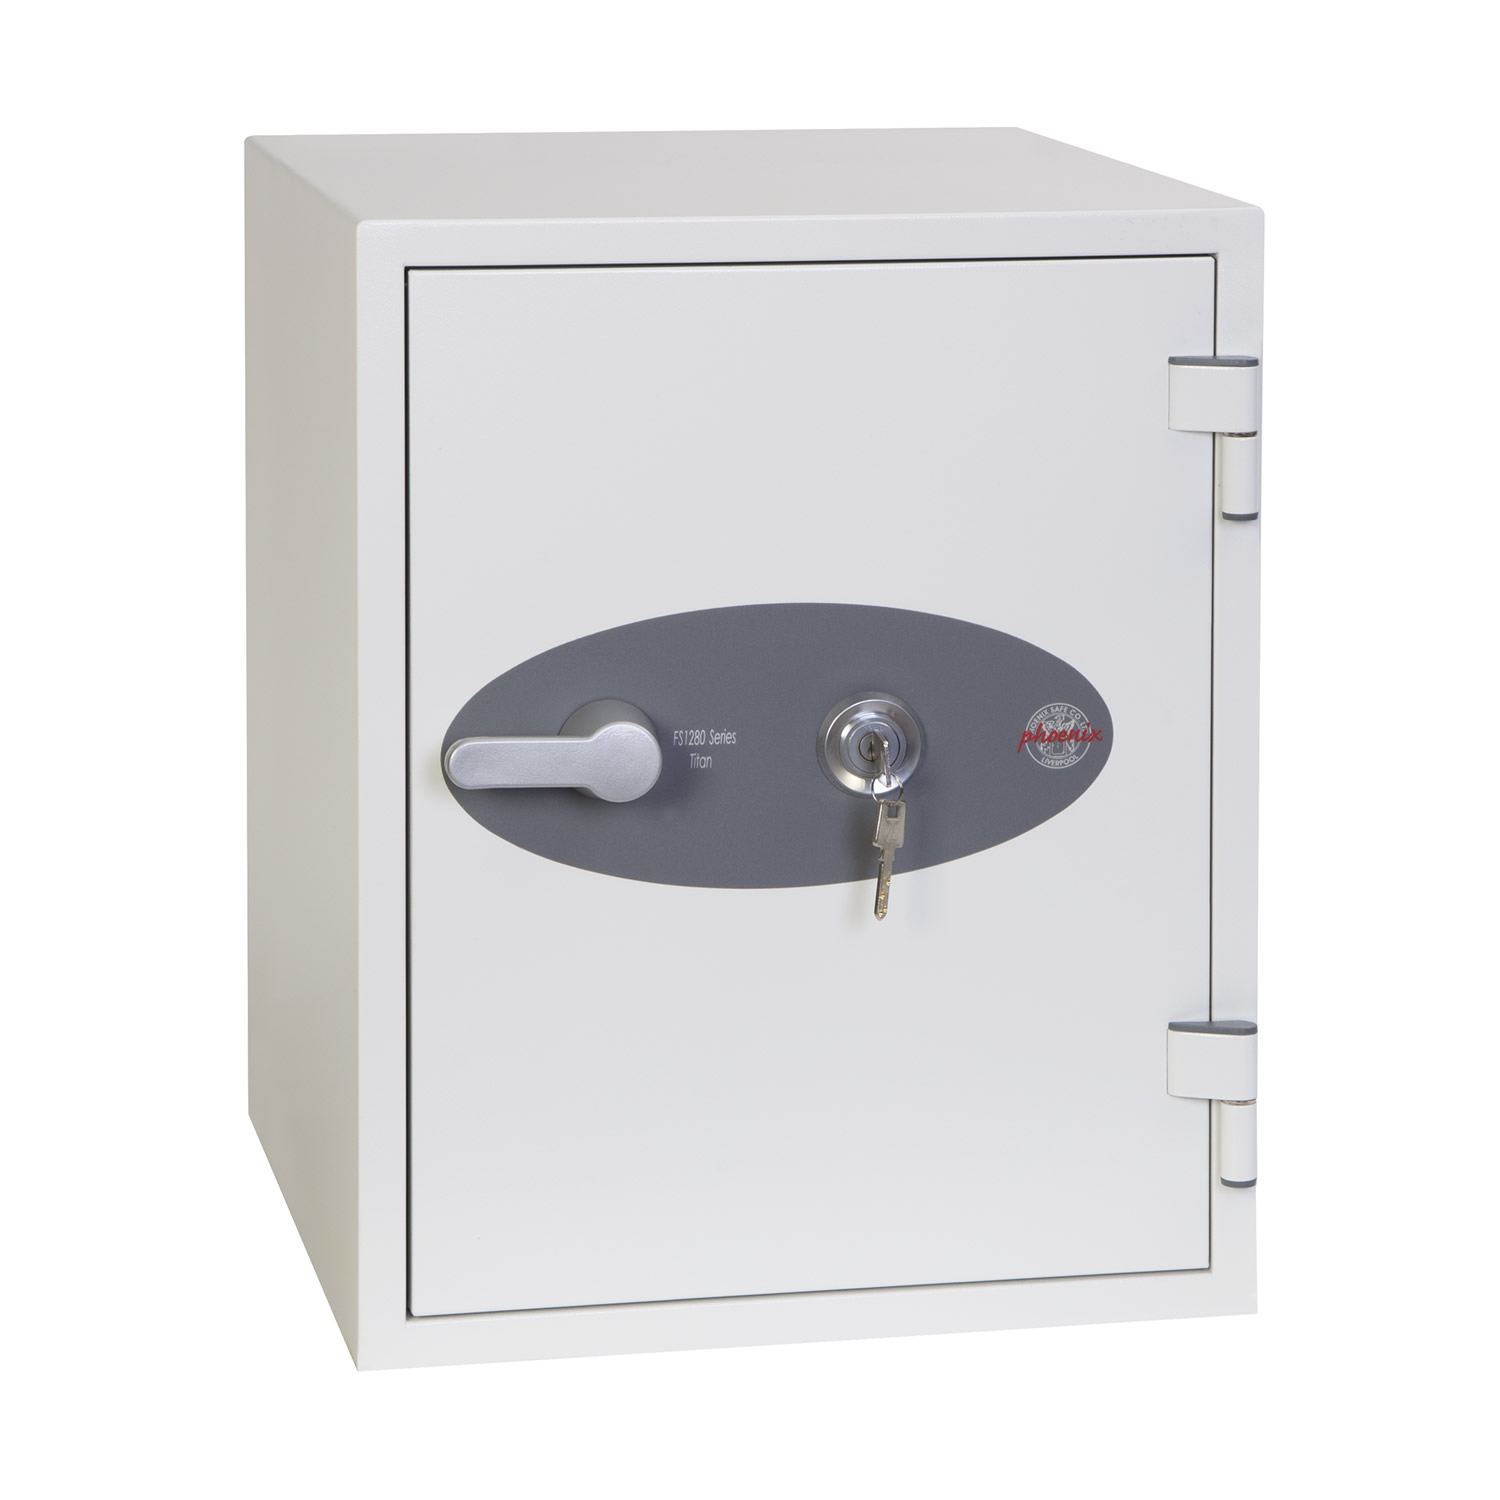 Phoenix Titan 1283 - Fire and Security Safe with Key Lock